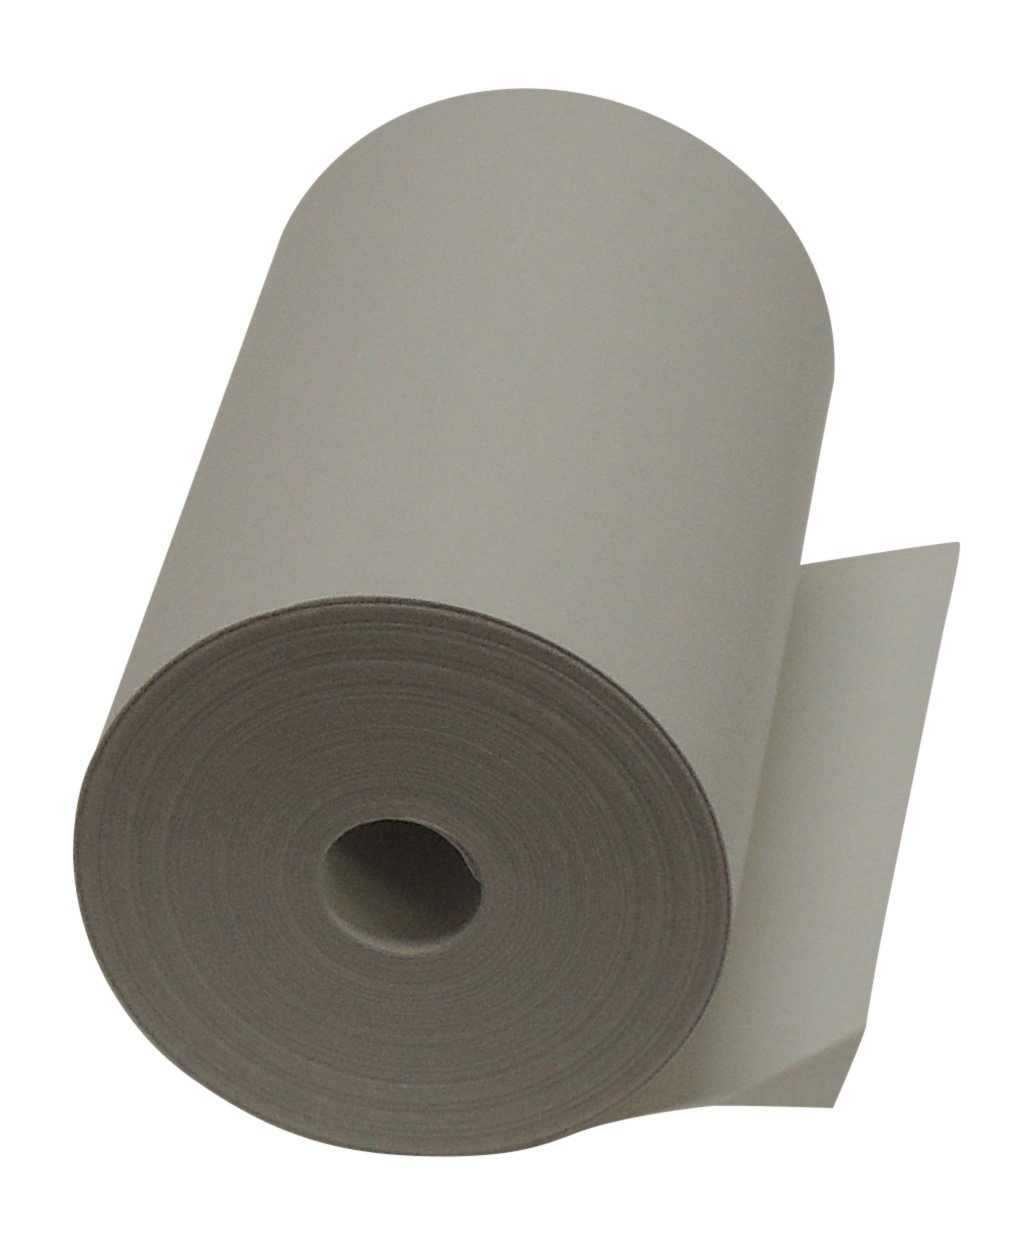 Thermal Paper 2-1/4'' x 50 ft, 1.25'' / 30mm Diameter, CORELESS, BPA Free, 100 Rolls by POS1 (Image #6)